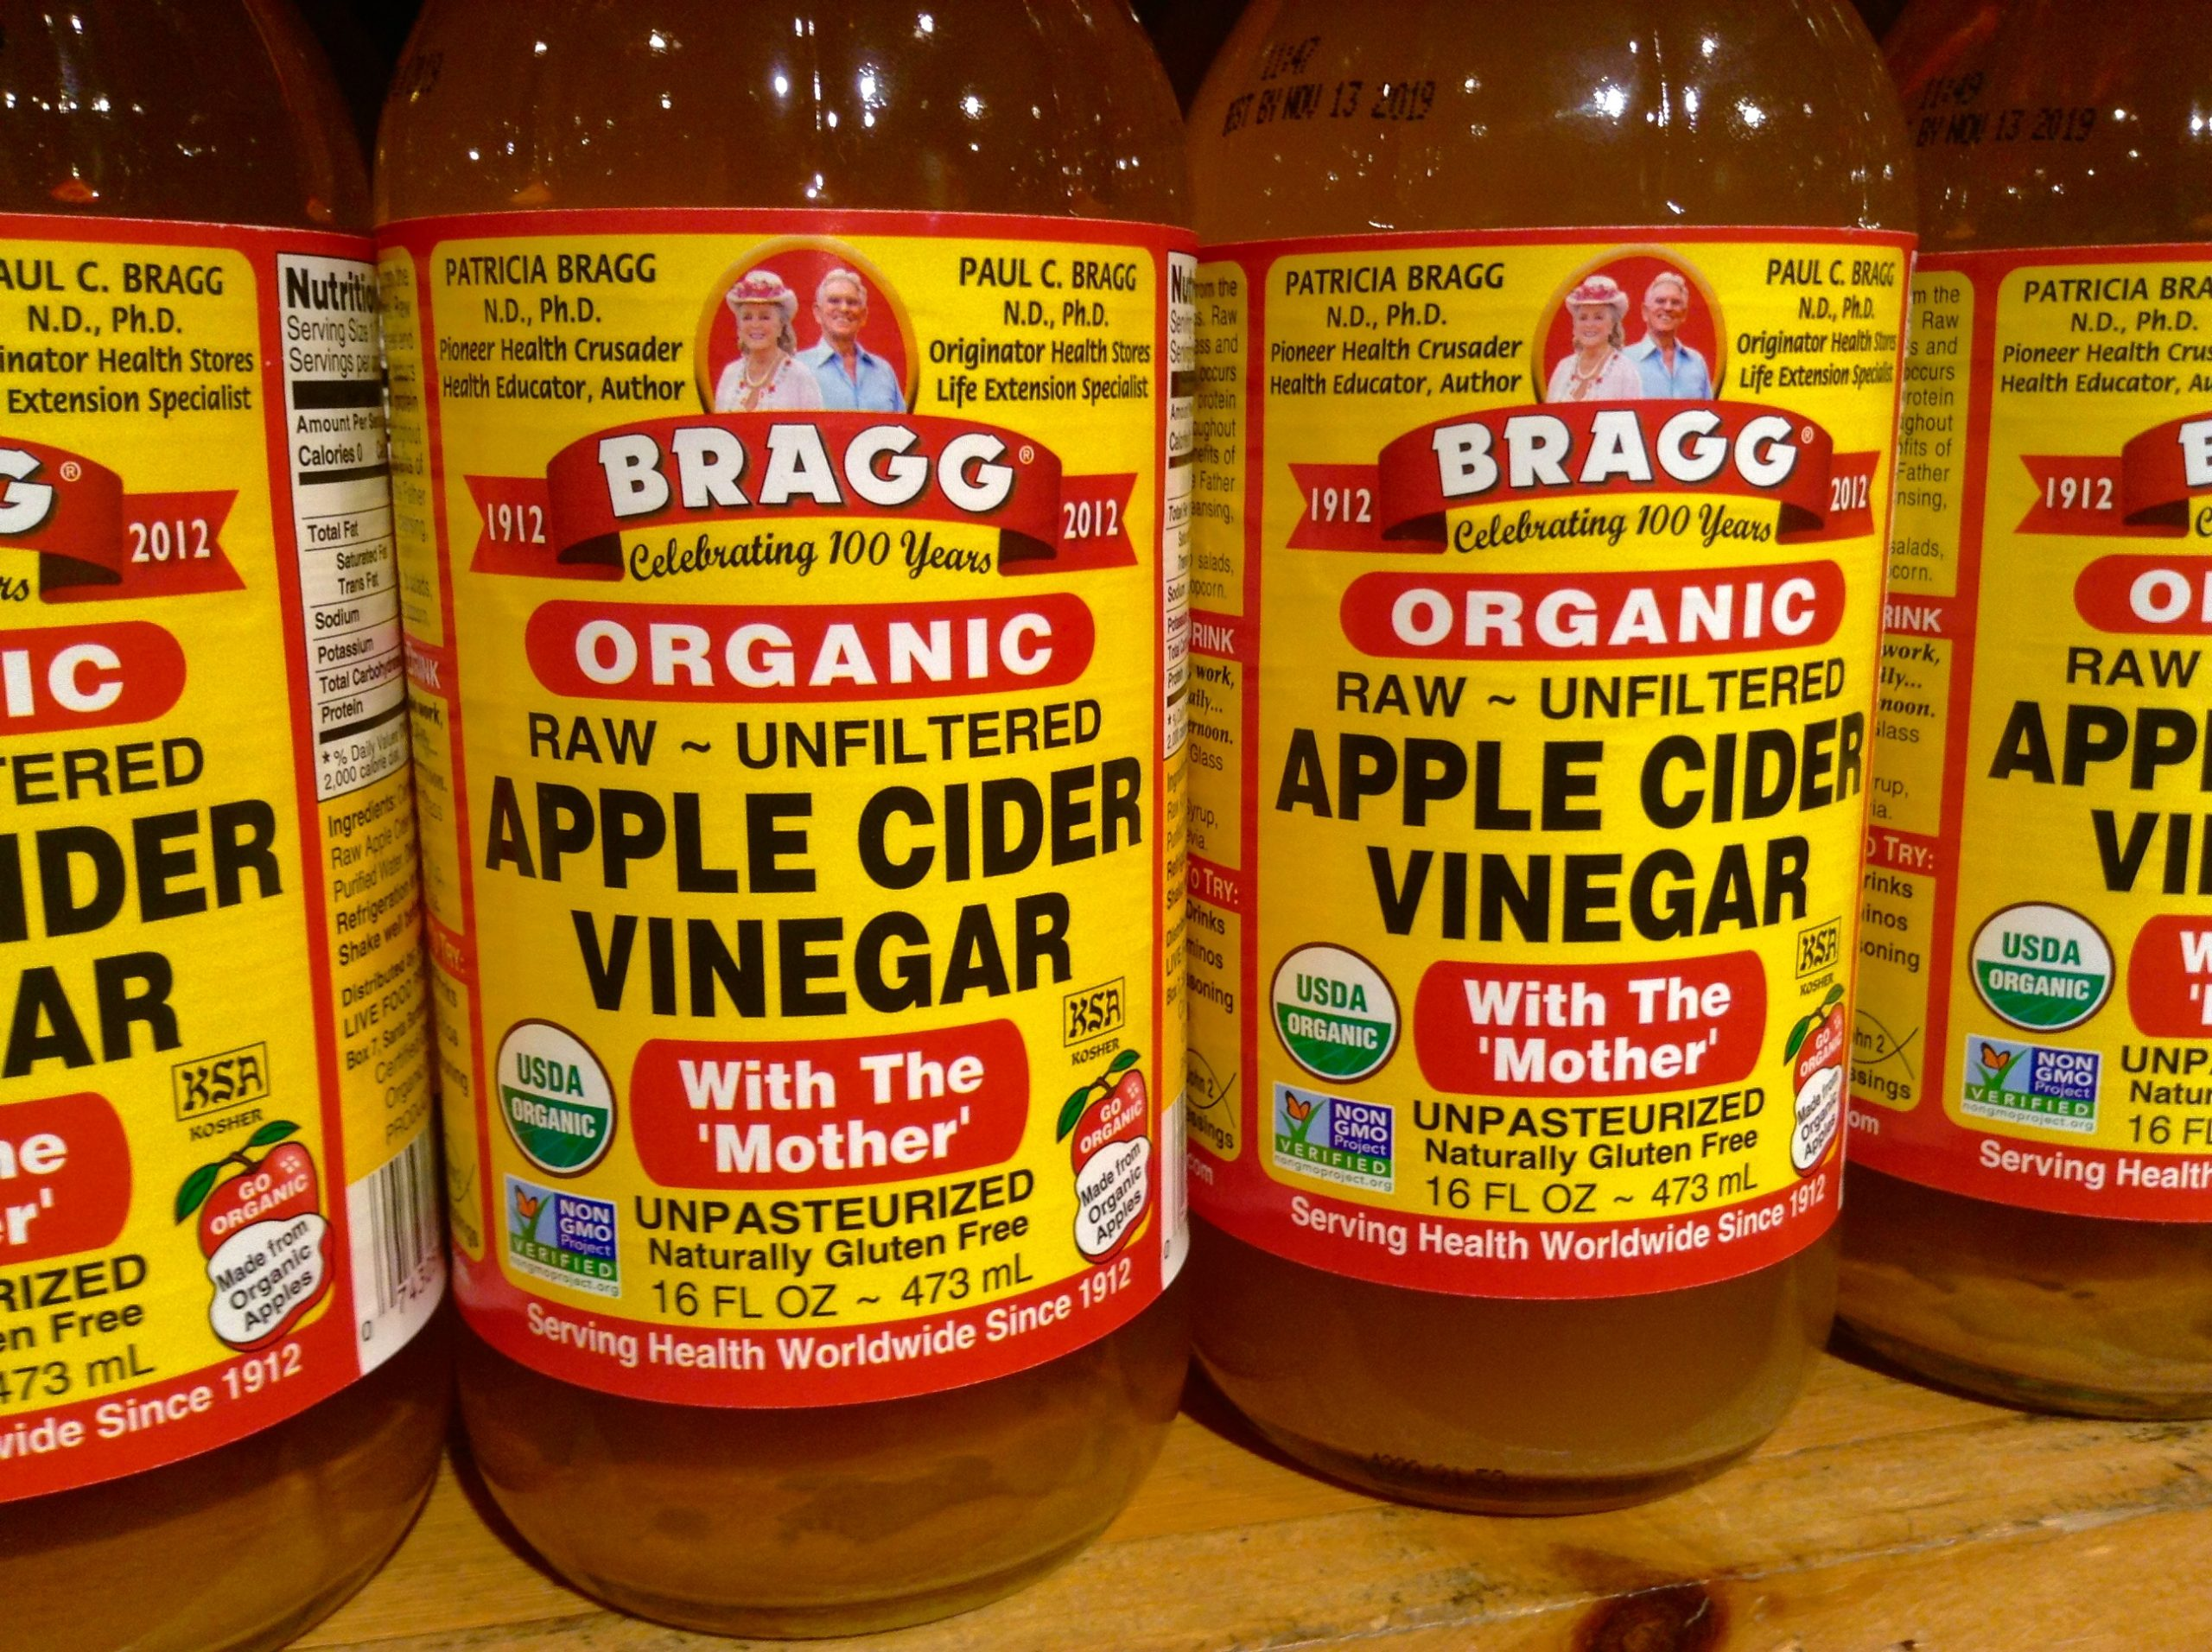 Bragg is one of the best apple cider vinegar products.